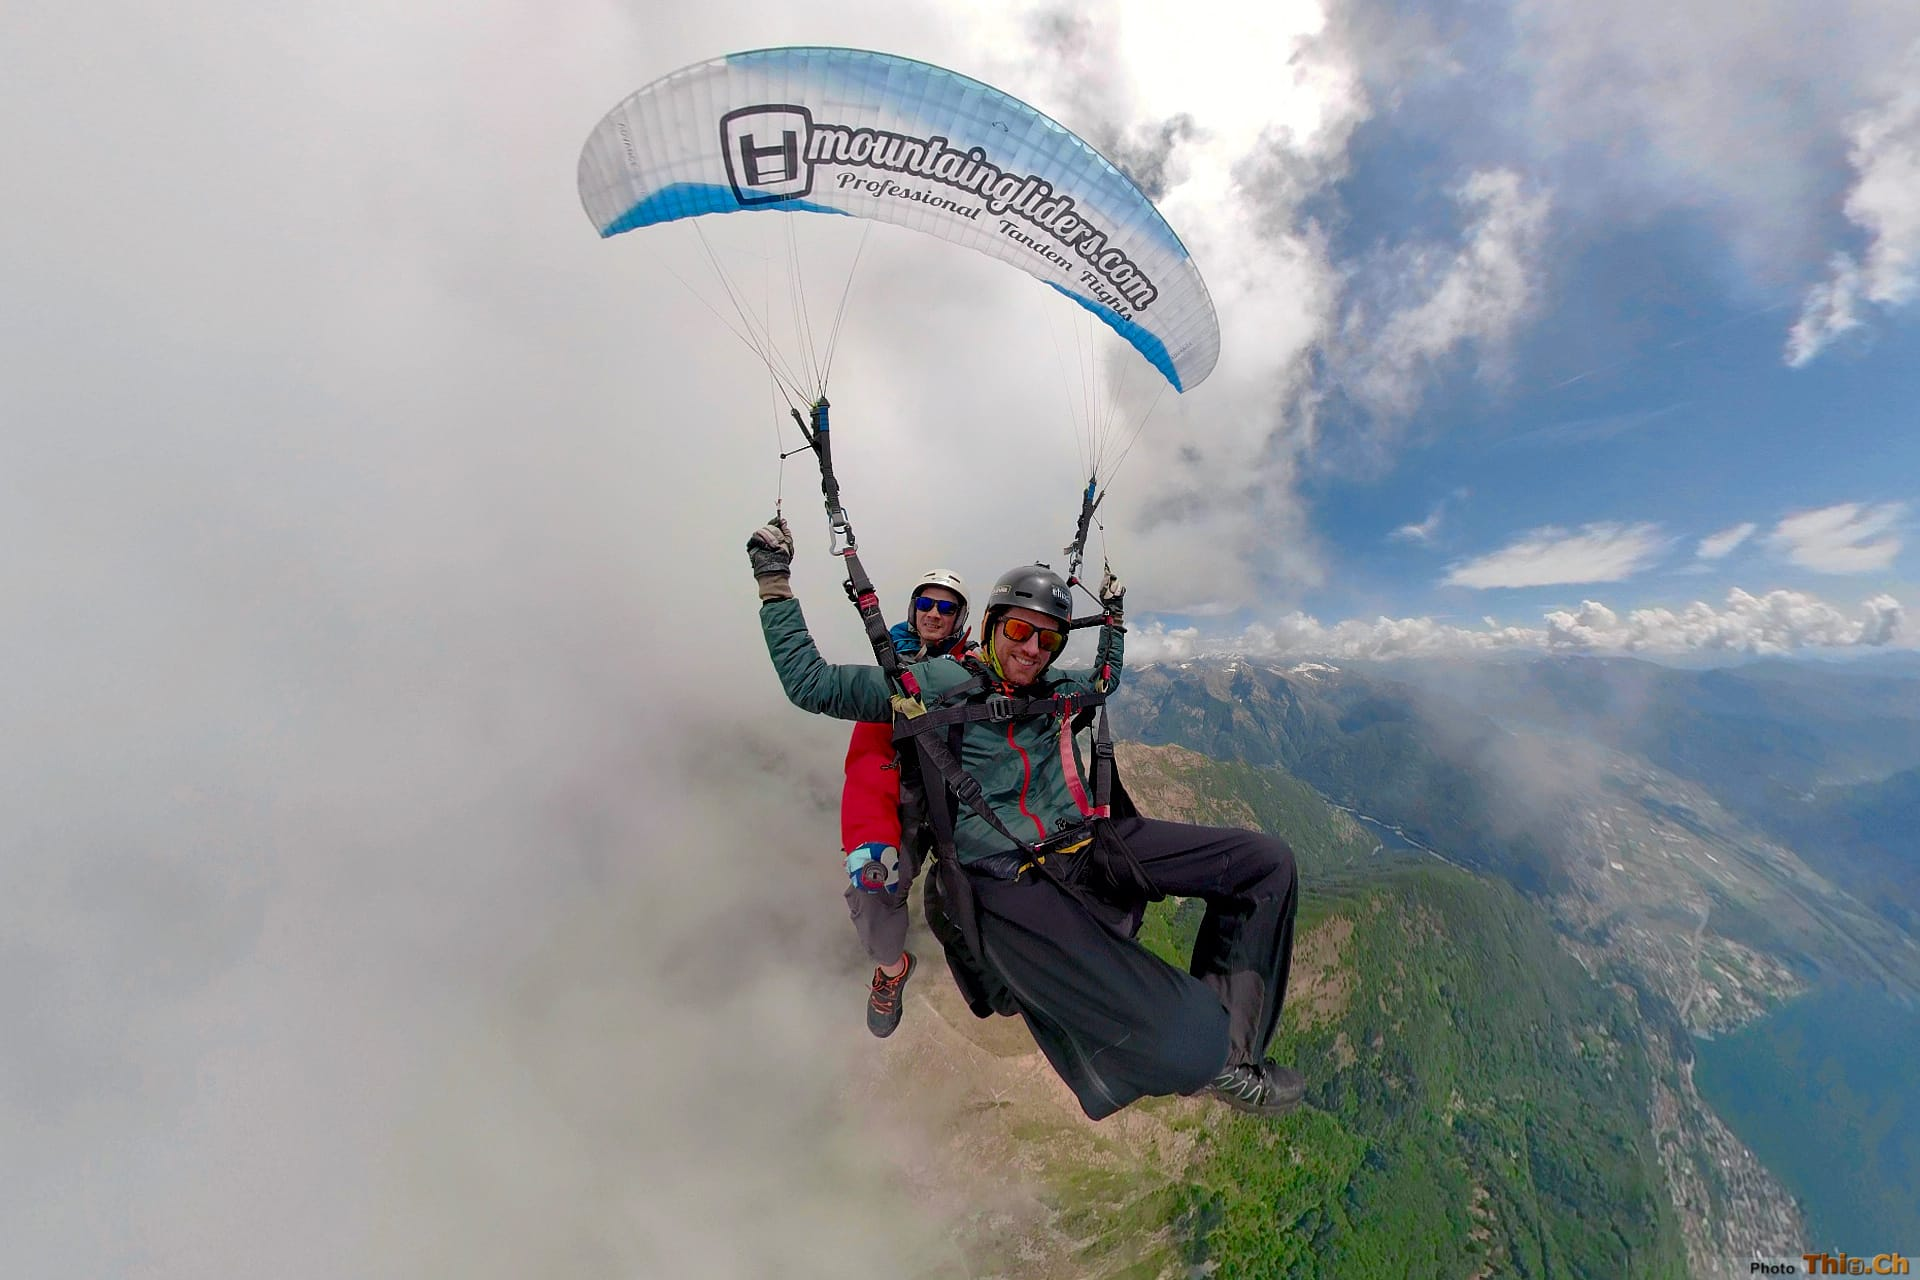 Into the clouds with a tandem paraglider